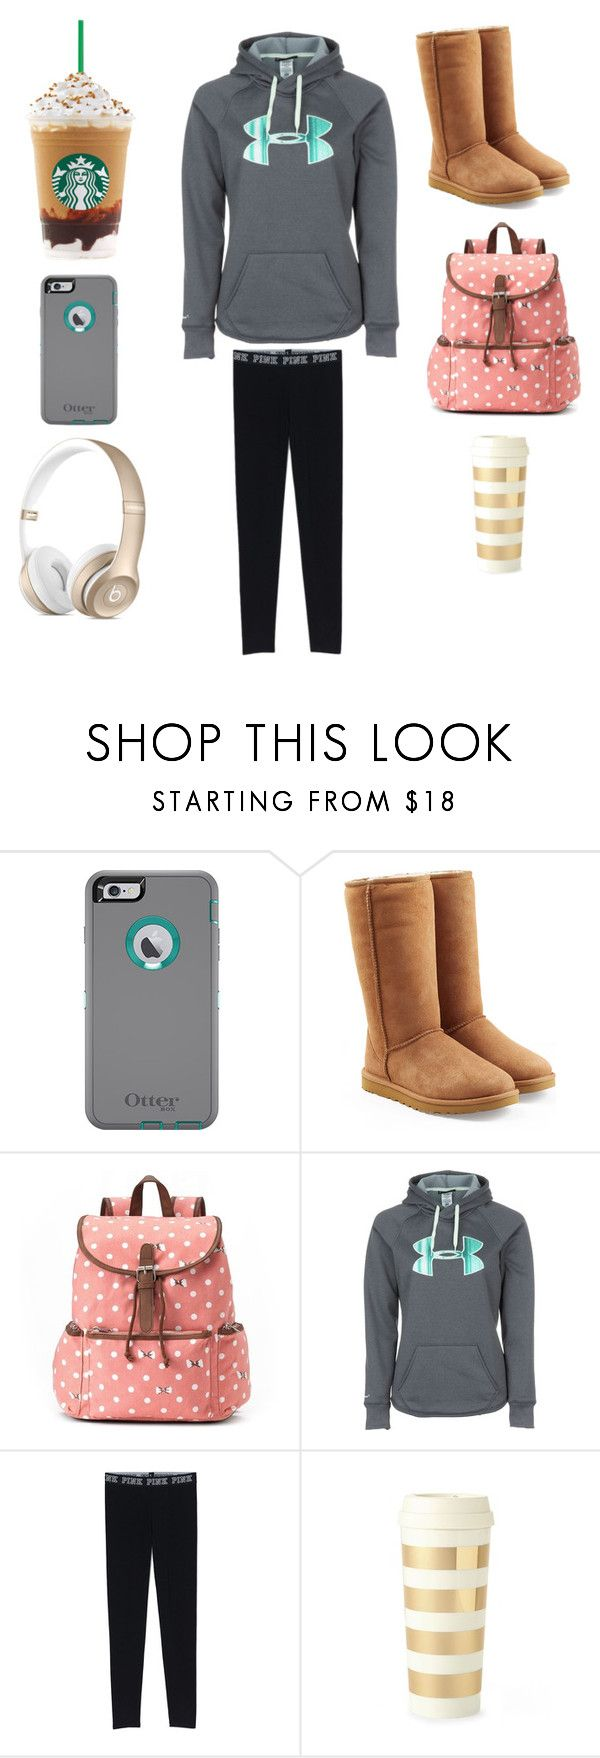 Fav Outfit For School by jenlisaac ❤ liked on Polyvore featuring UGG Australia, Candies, Under Armour, Kate Spade, womens clothing, women, female, woman, misses and juniors